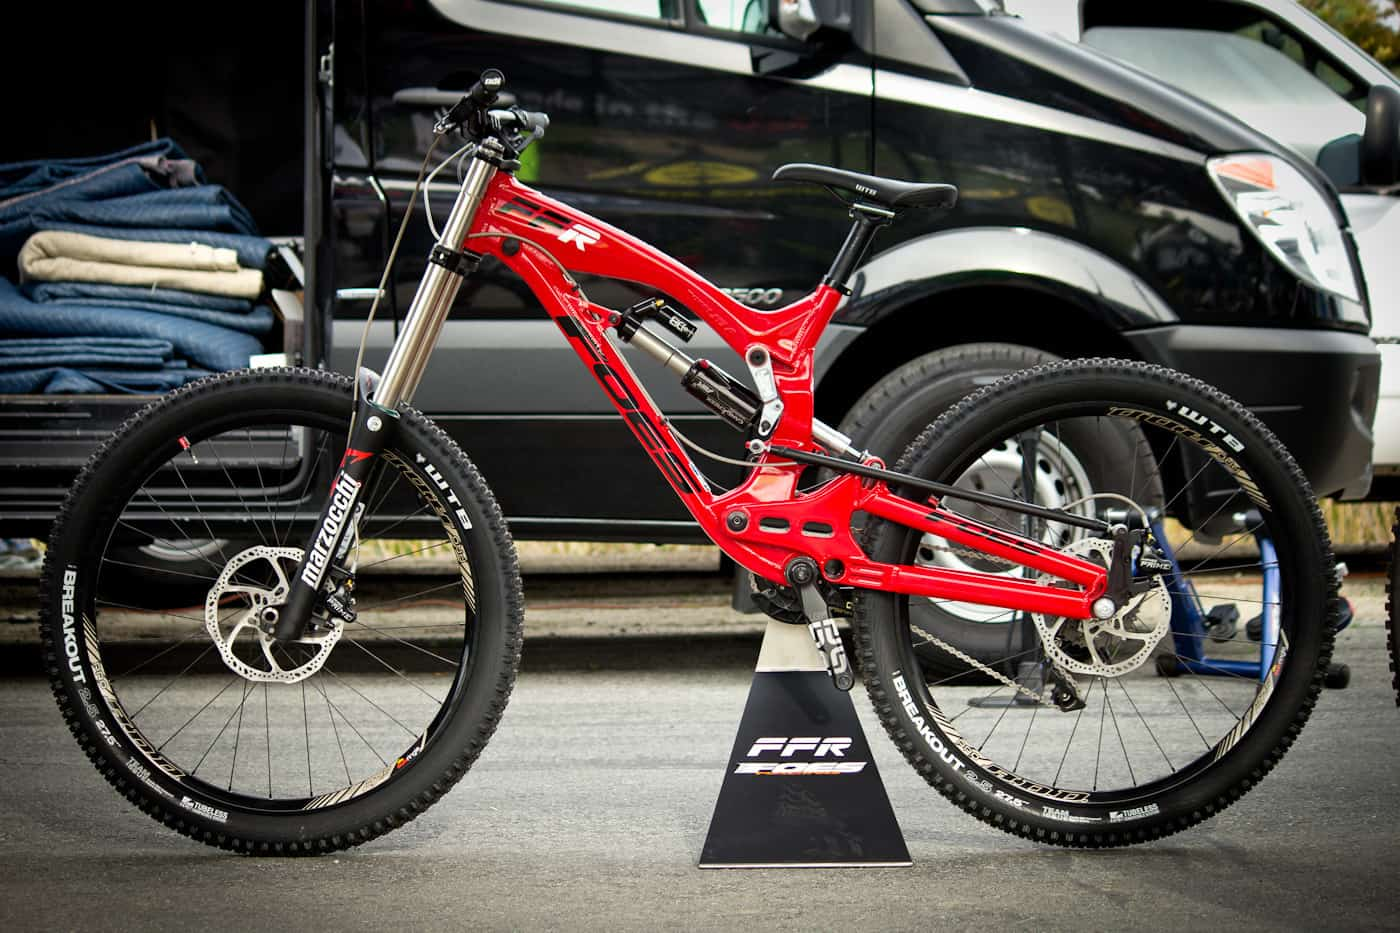 Bikes Made In Usa FFR downhill mountain bike